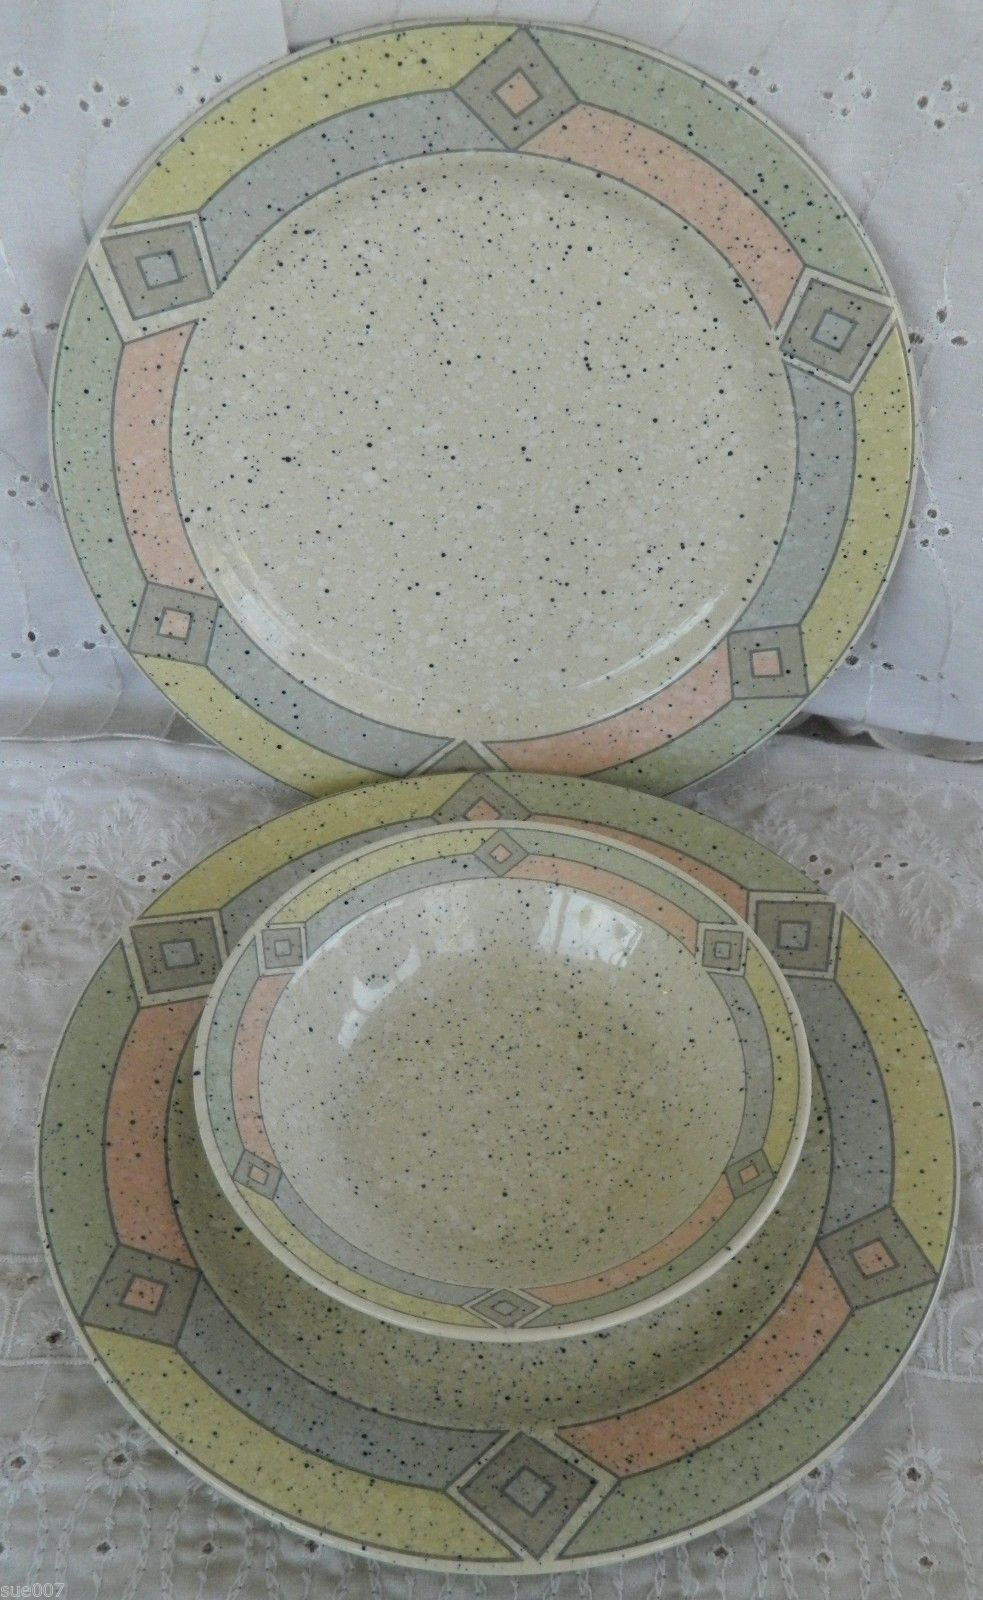 Studio Nova TERRAZZO MB002 Oven to Table 2 Dinner Plates 1 Rim Soup Cereal Bowl & Studio Nova TERRAZZO MB002 Oven to Table 2 and 28 similar items